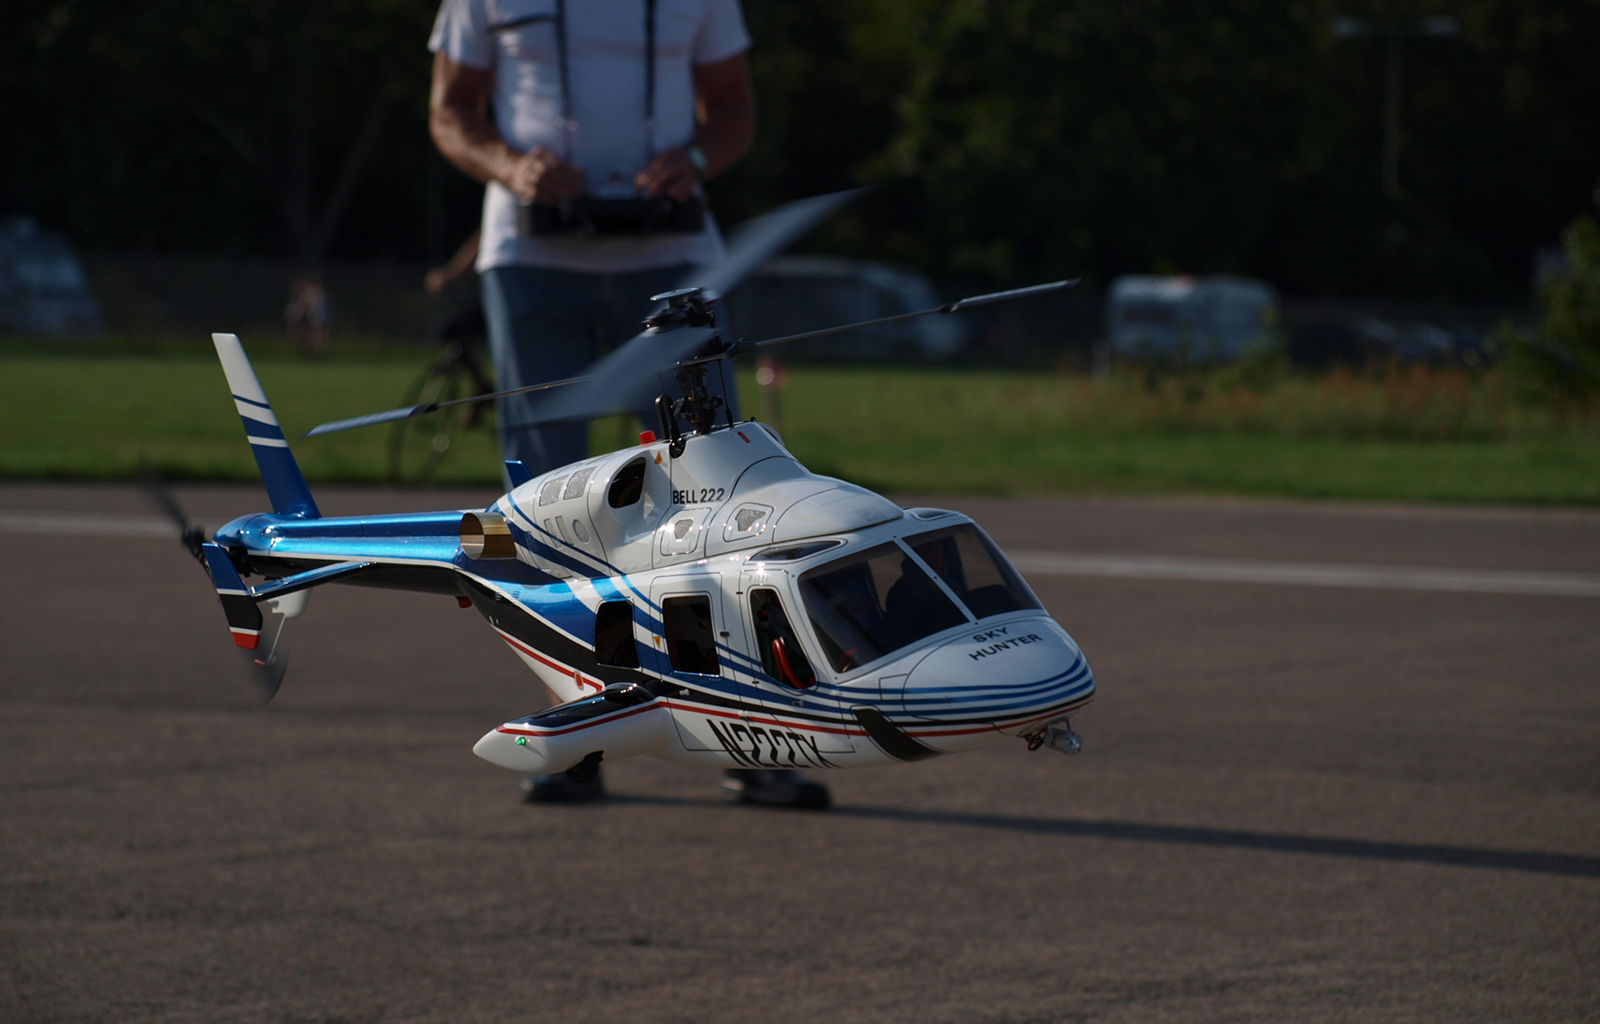 rc helicopter pilot looking for fun stuffs that can really give